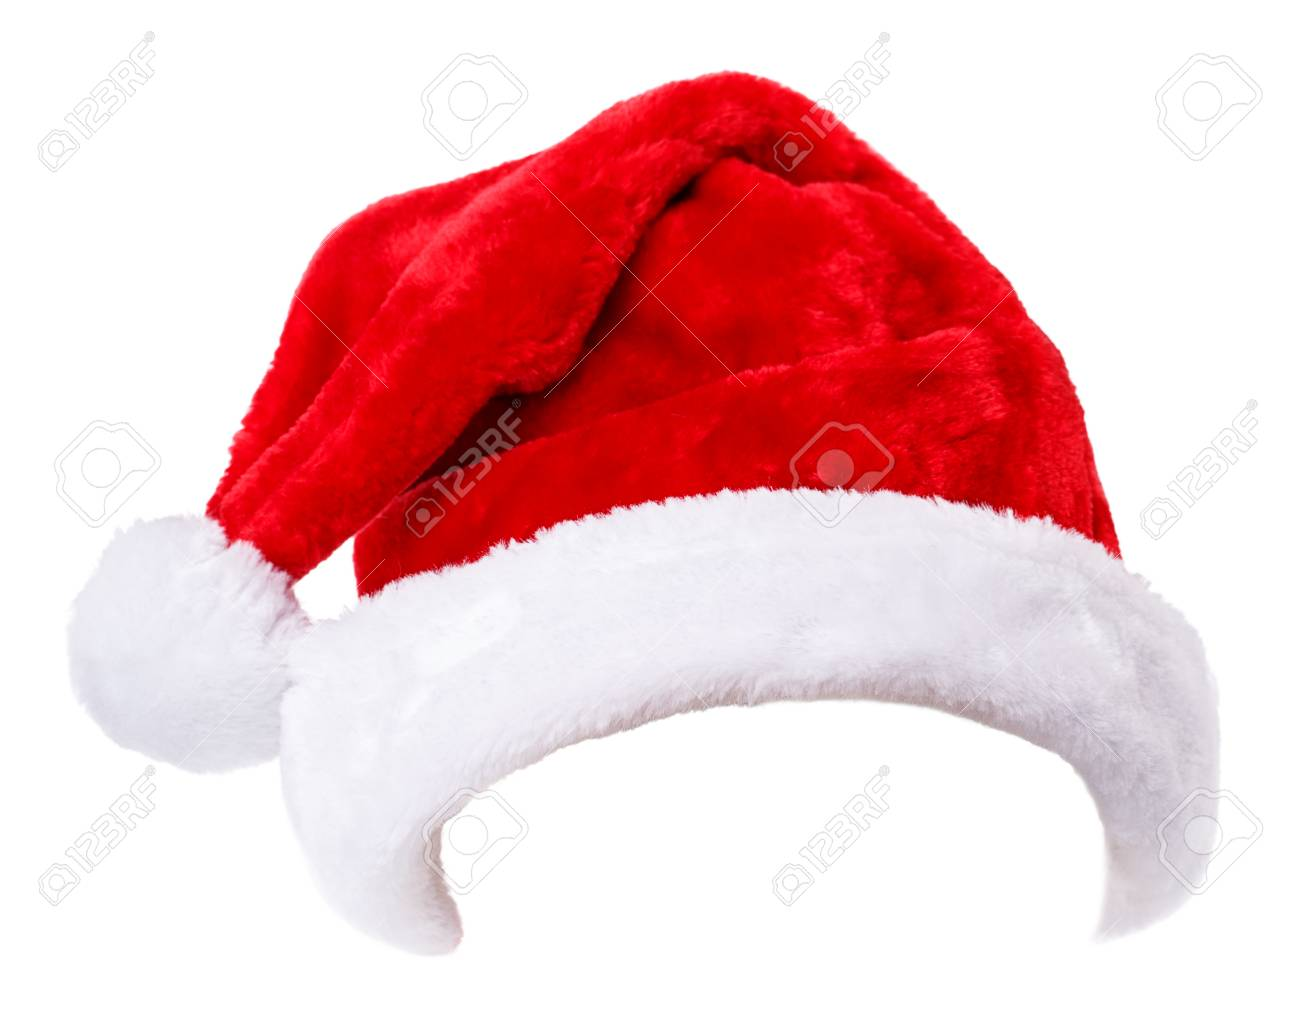 Santa Claus hat Isolated on white background Stock Photo - 51407599 9a4c499e8f6b